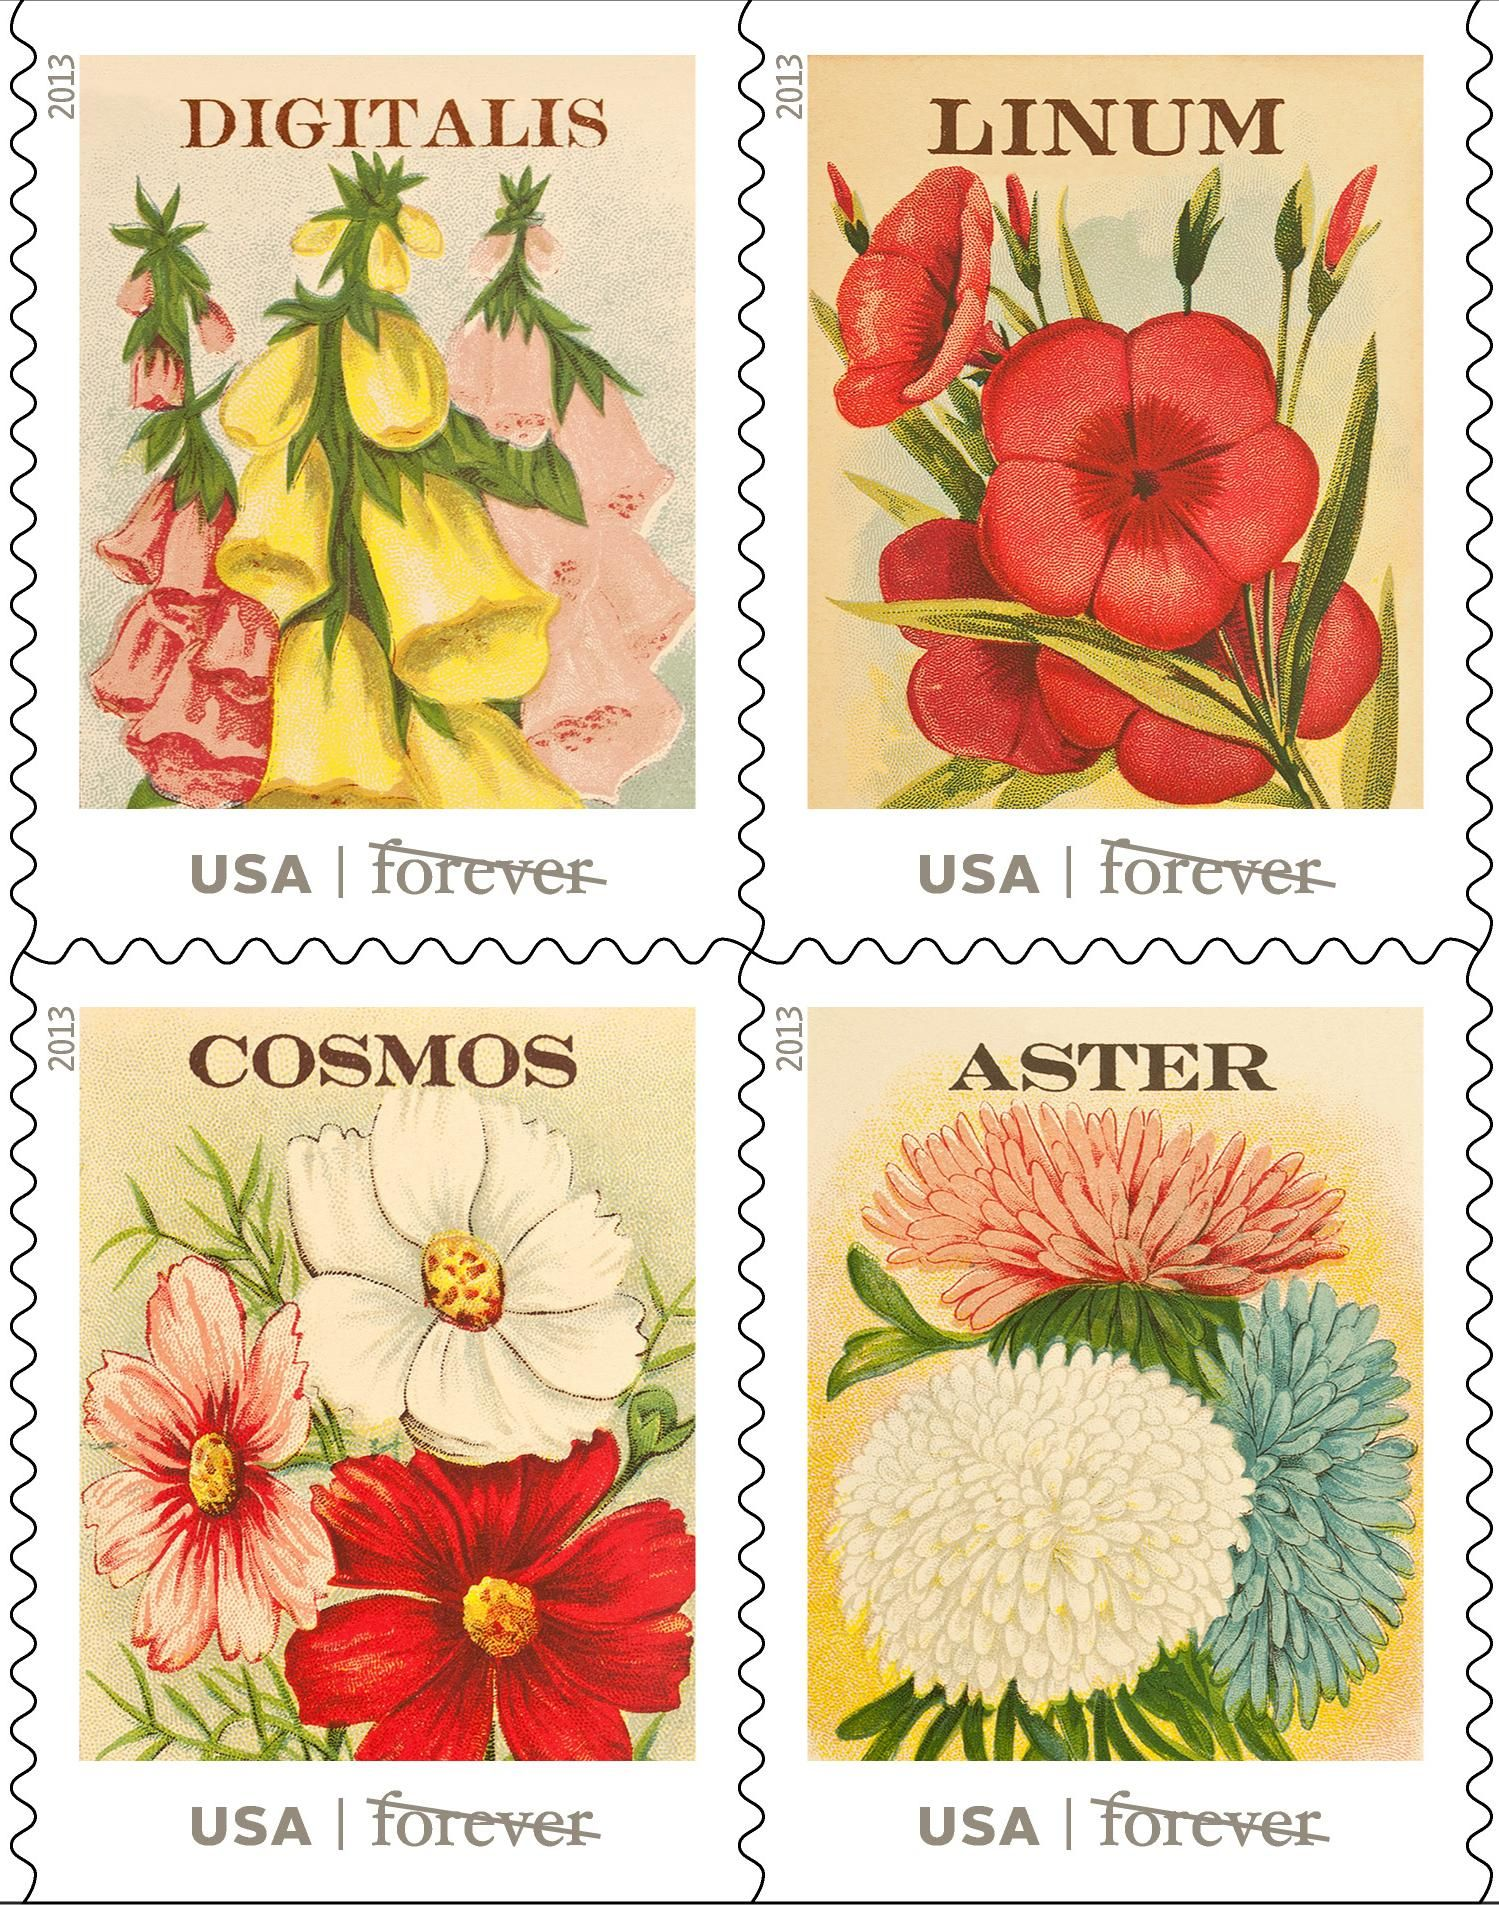 Spring into Action, get the new Vintage Seed Packets- Forever Stamps